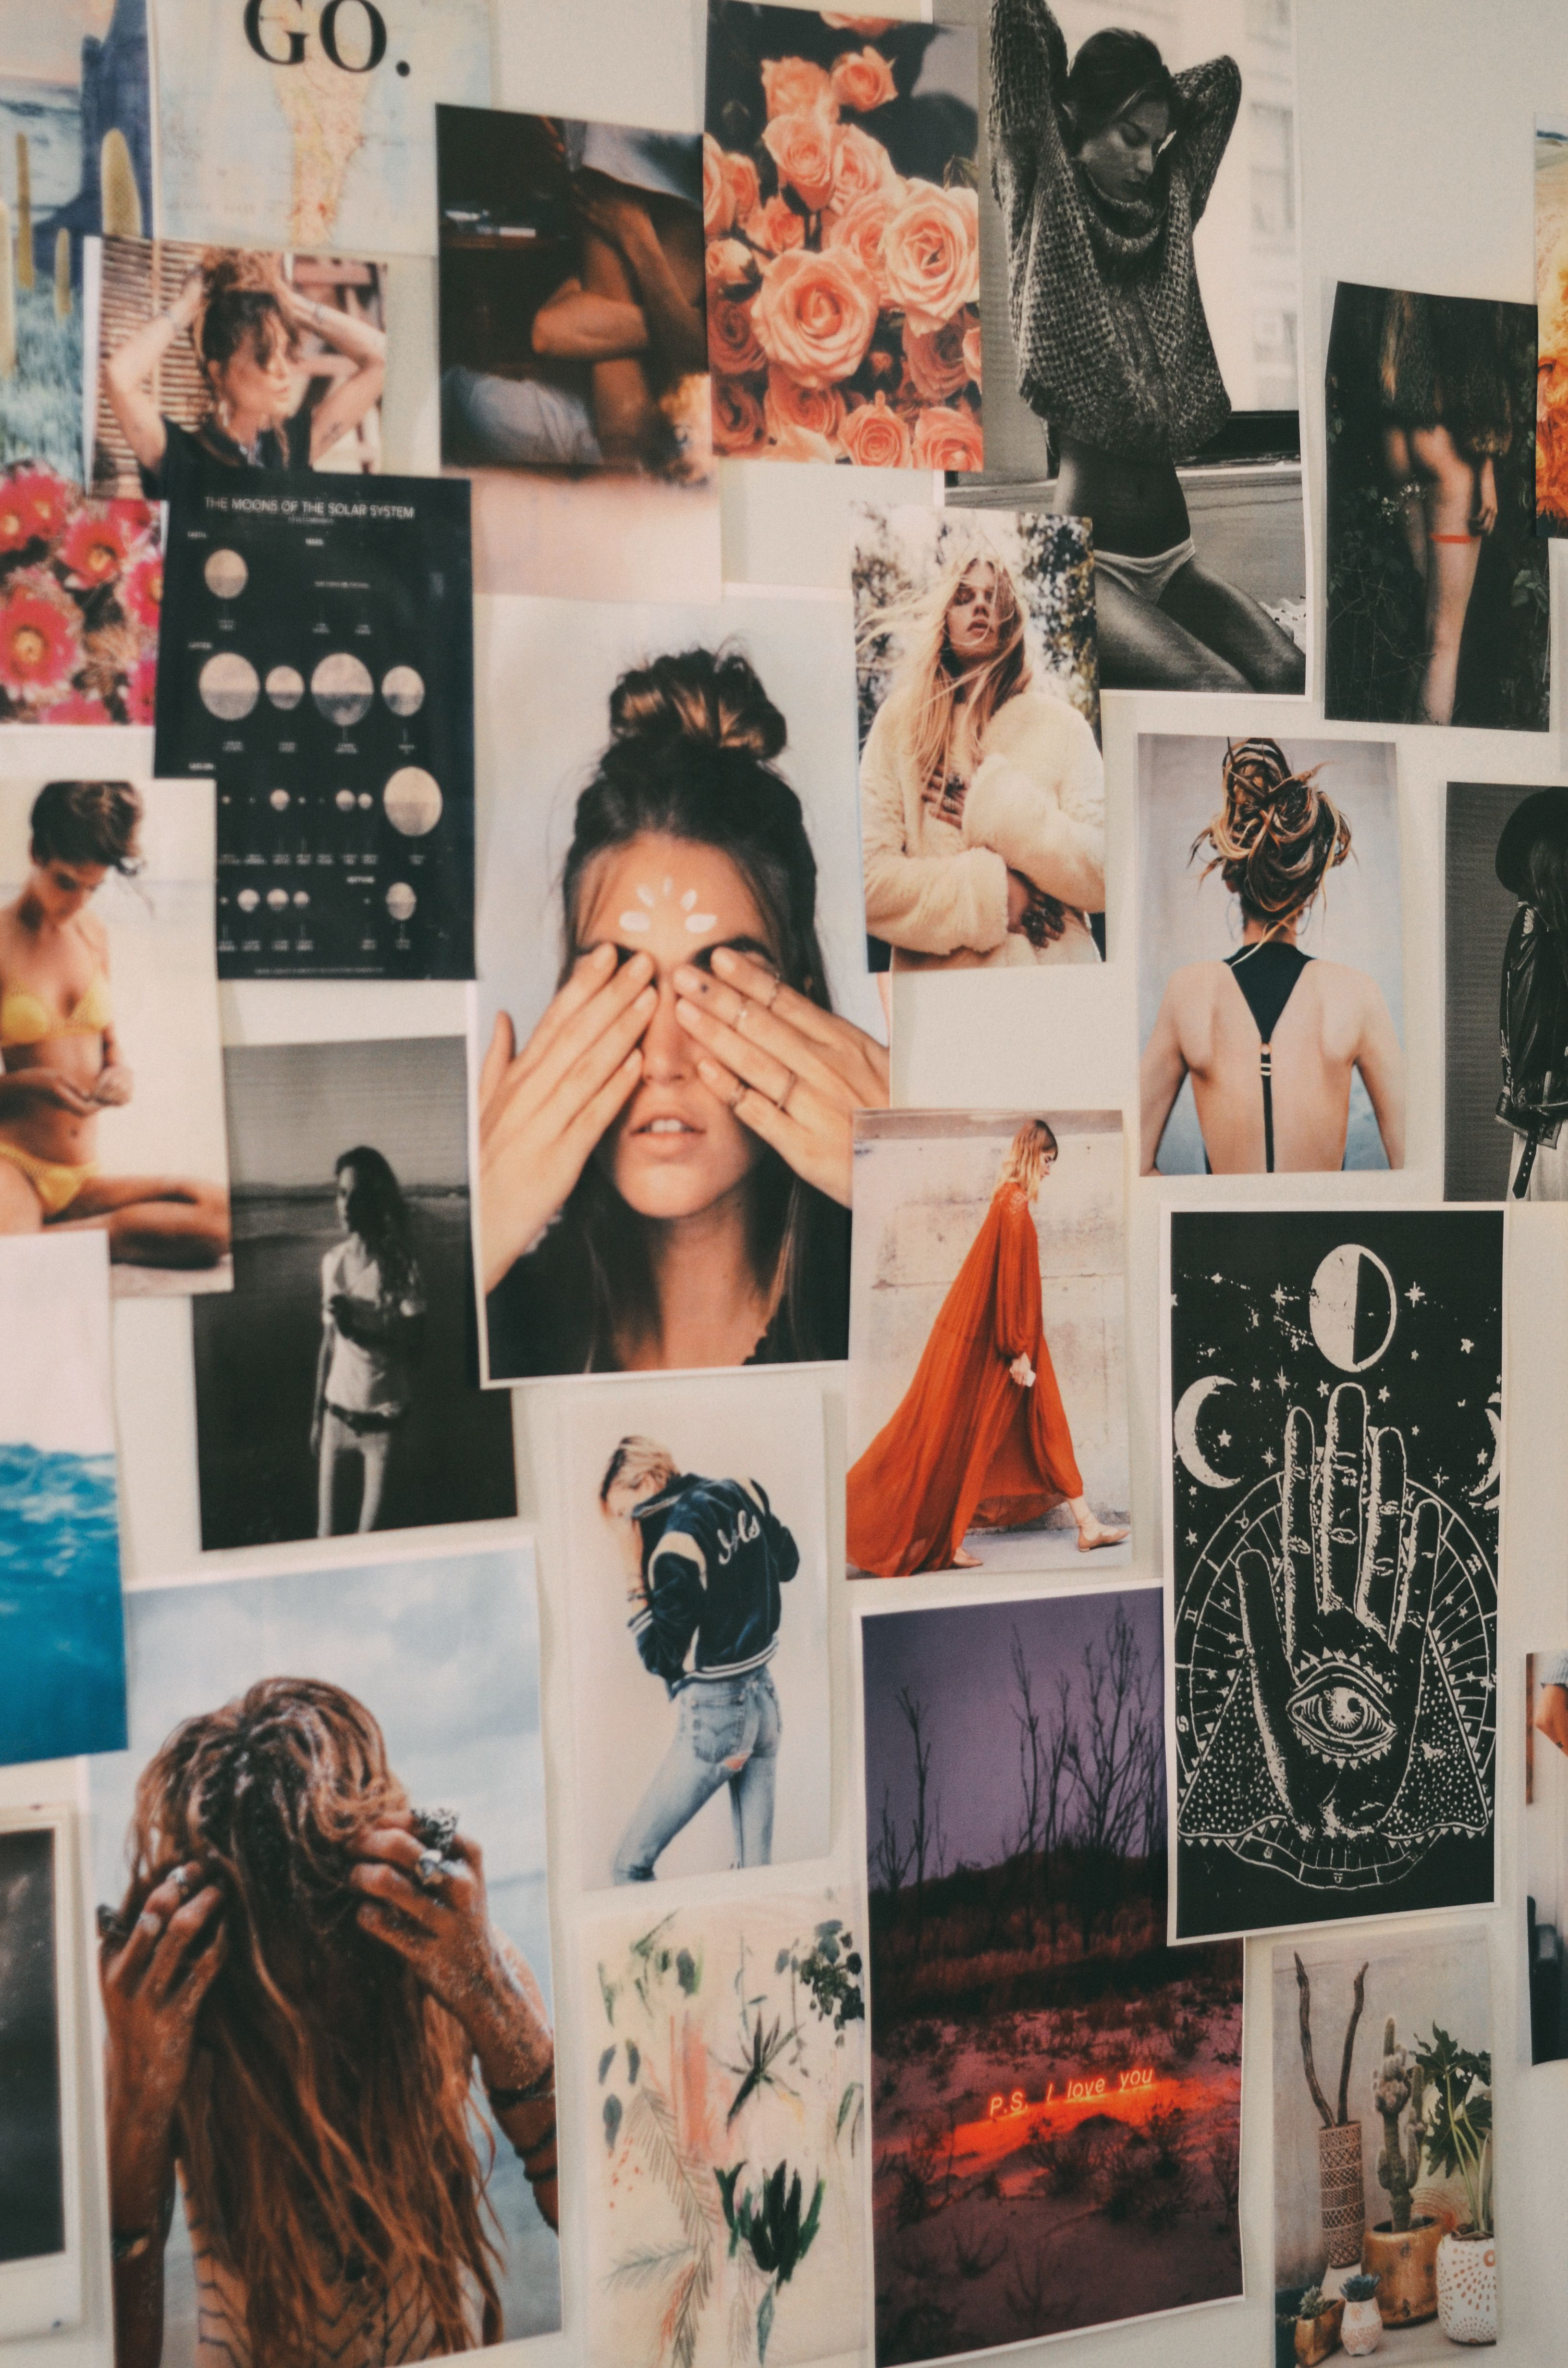 Inspiration boards on walls ideas indie aesthetic #decor